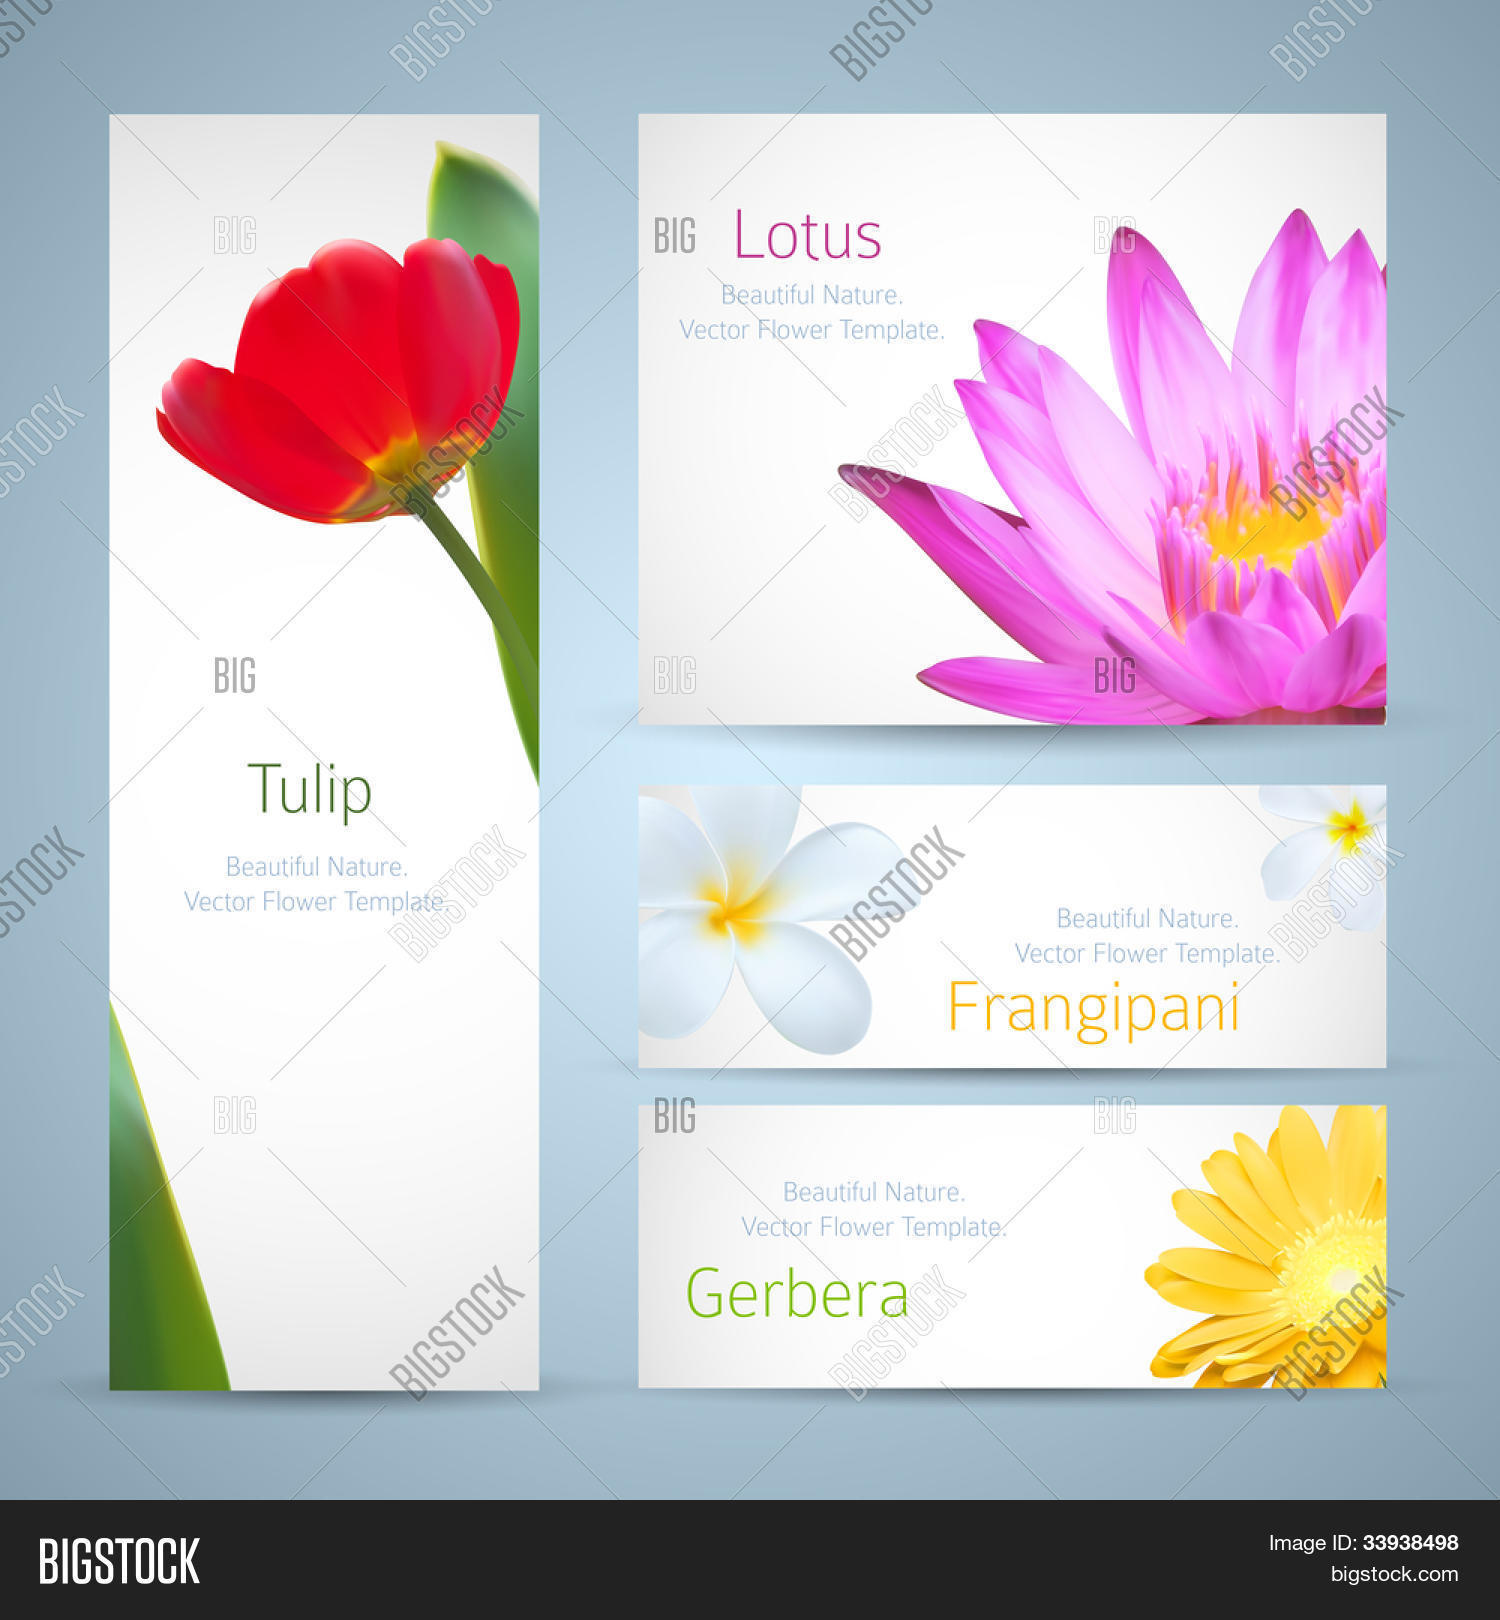 Brochure design water lily flower vector photo bigstock brochure design water lily flower frangipani and tulip vector template exotic tropical flowers izmirmasajfo Images